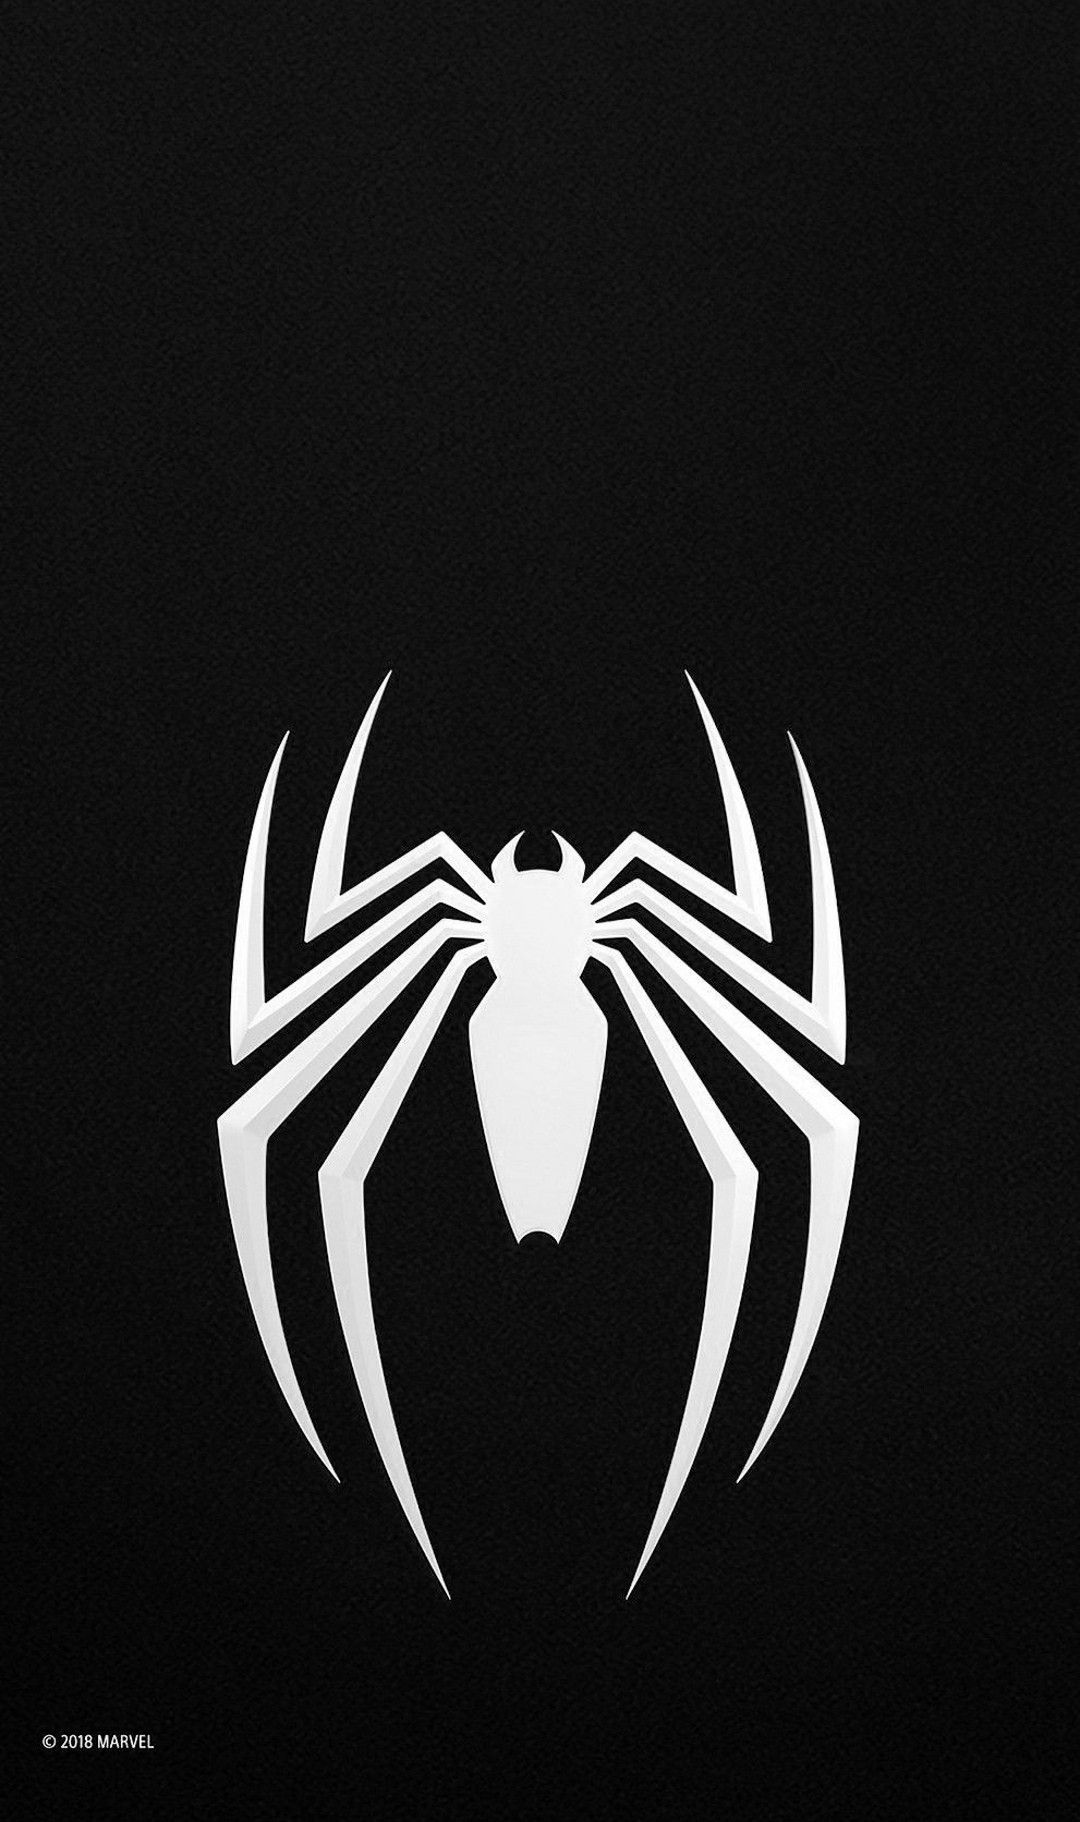 Spiderman logo black white spider verse spiderman - Black and white spiderman wallpaper ...